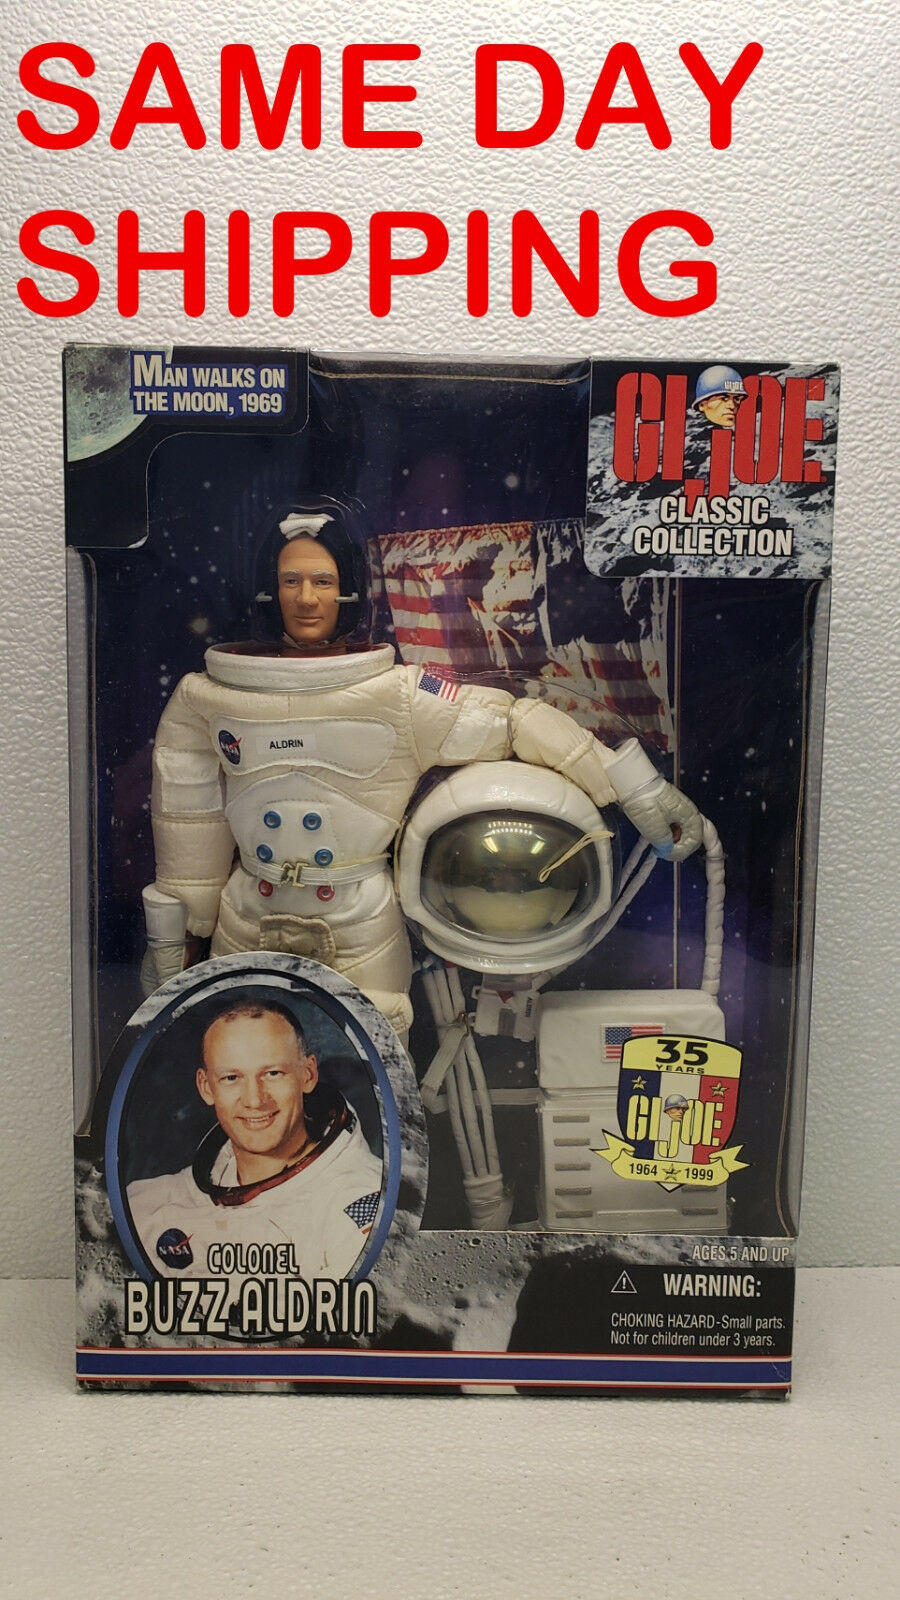 Hasbro gi joe classic collection buzz aldrin new in box posten 800200-r2